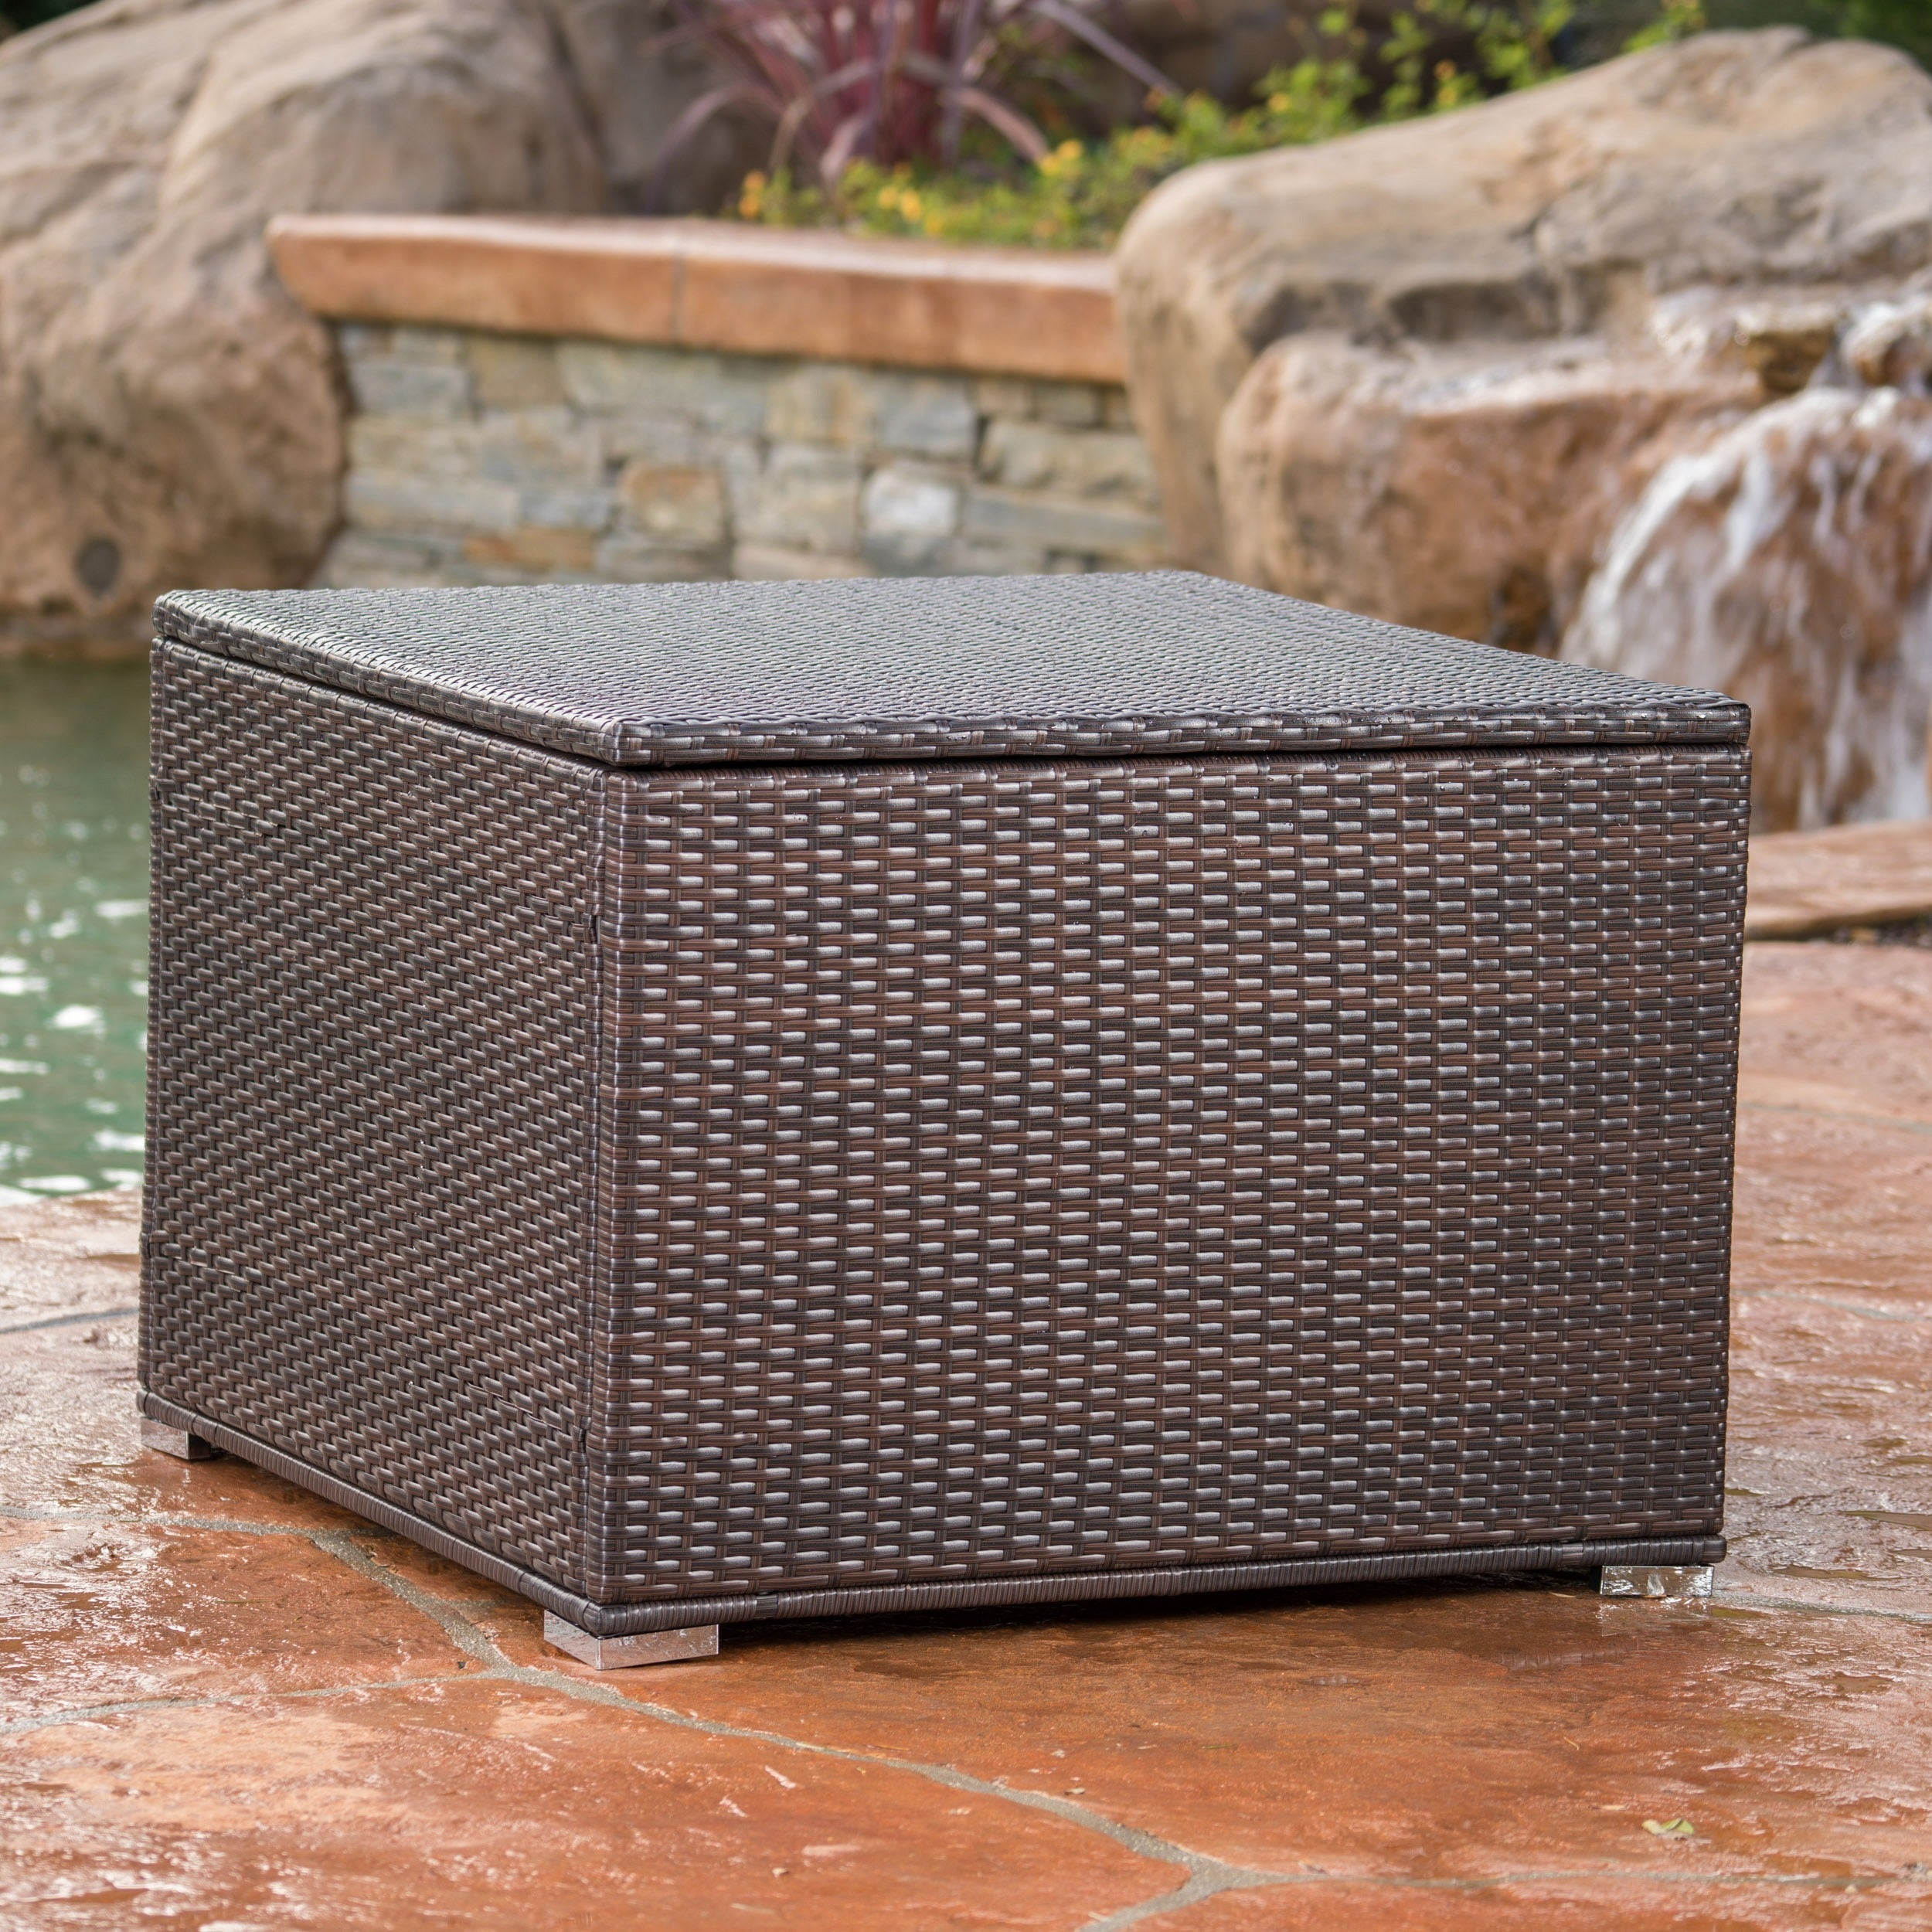 Santa Rosa Outdoor Wicker Storage Box By Christopher Knight Home   Free  Shipping Today   Overstock.com   19890301